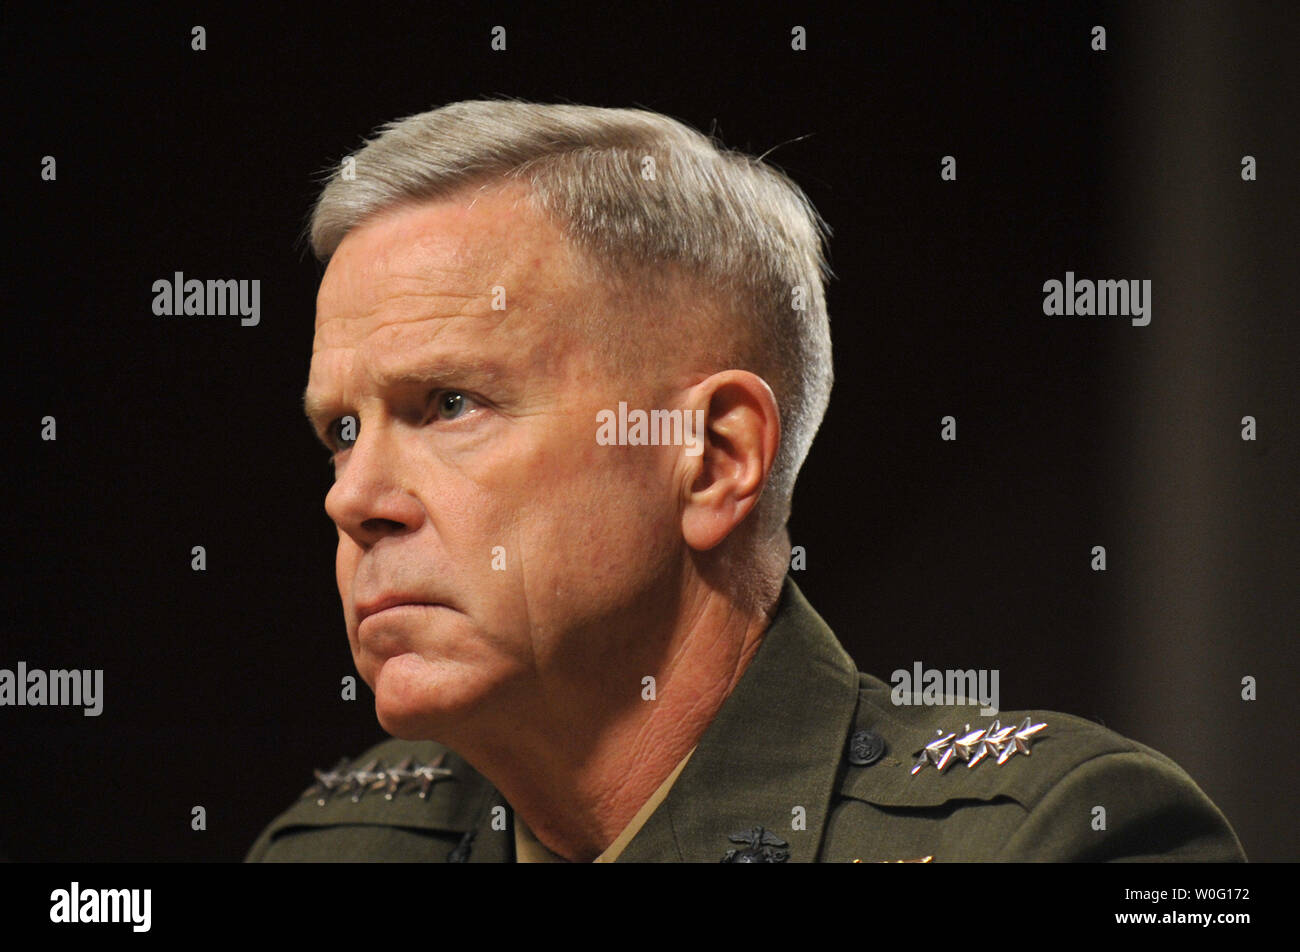 Gen. James Amos testifies before the Senate Armed Services Committee during his hearing reappointment hearing to be commandant of the Marine Corps. in Washington on September 21, 2010.   UPI/Kevin Dietsch Stock Photo